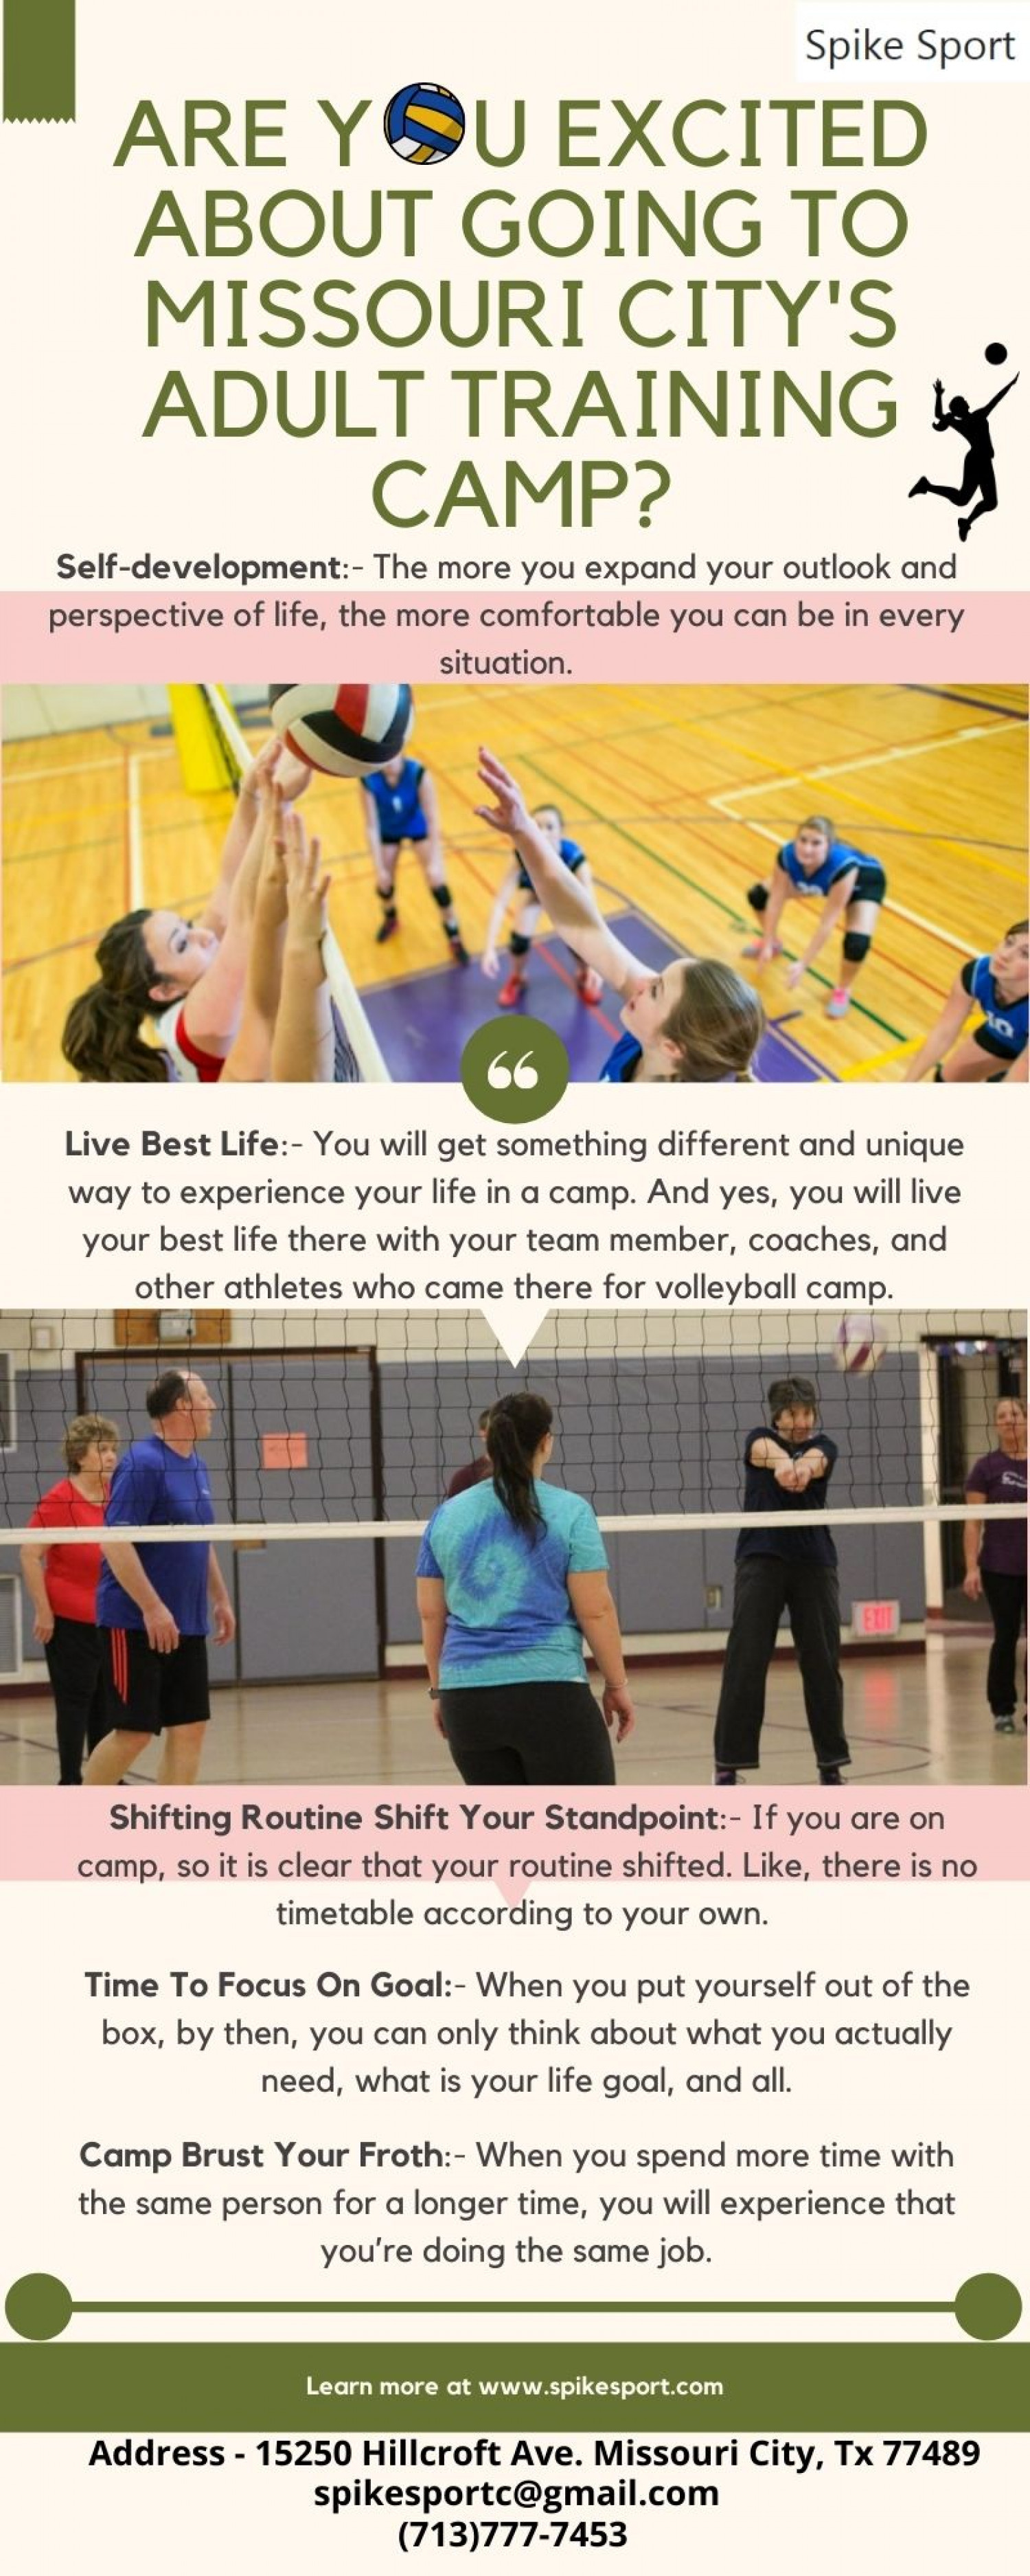 Are you Excited About Going to Missouri City's Adult Training Camp? Infographic